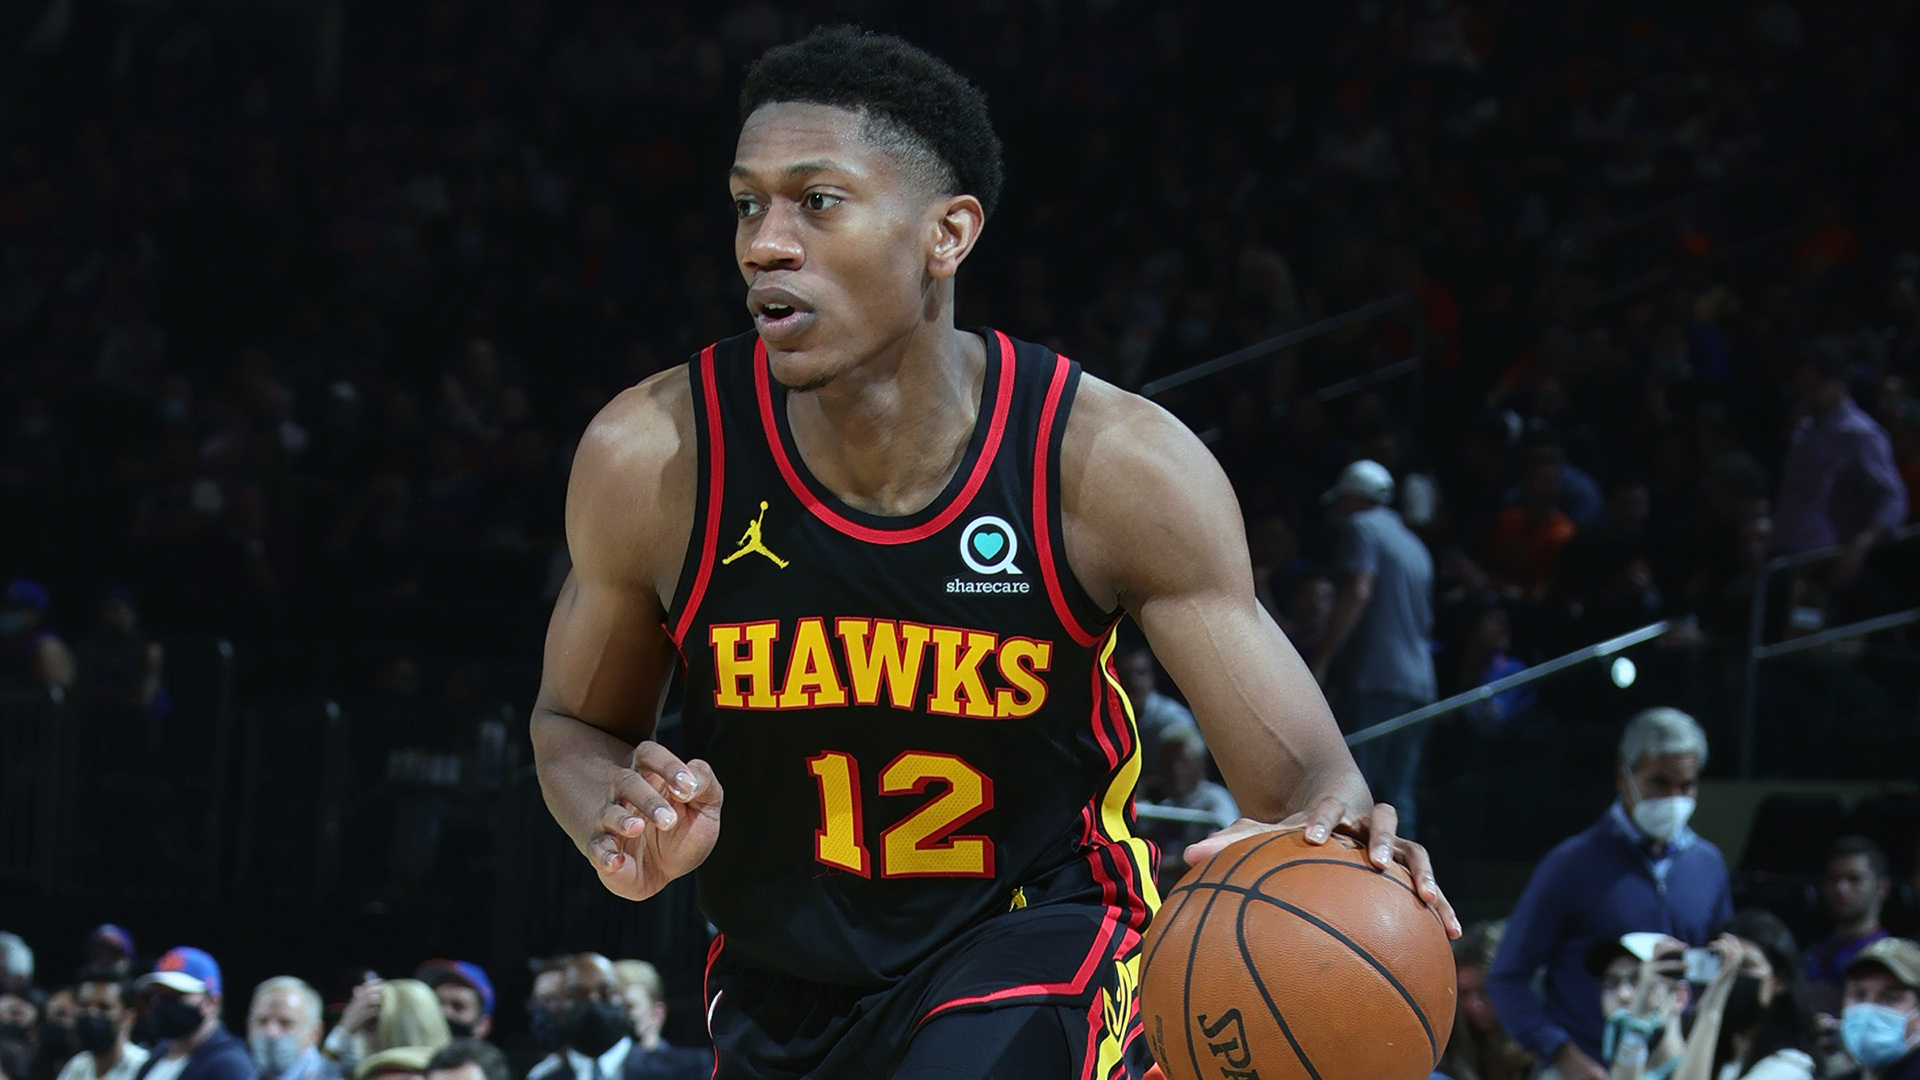 Hawks' De'Andre Hunter out for season with torn right meniscus